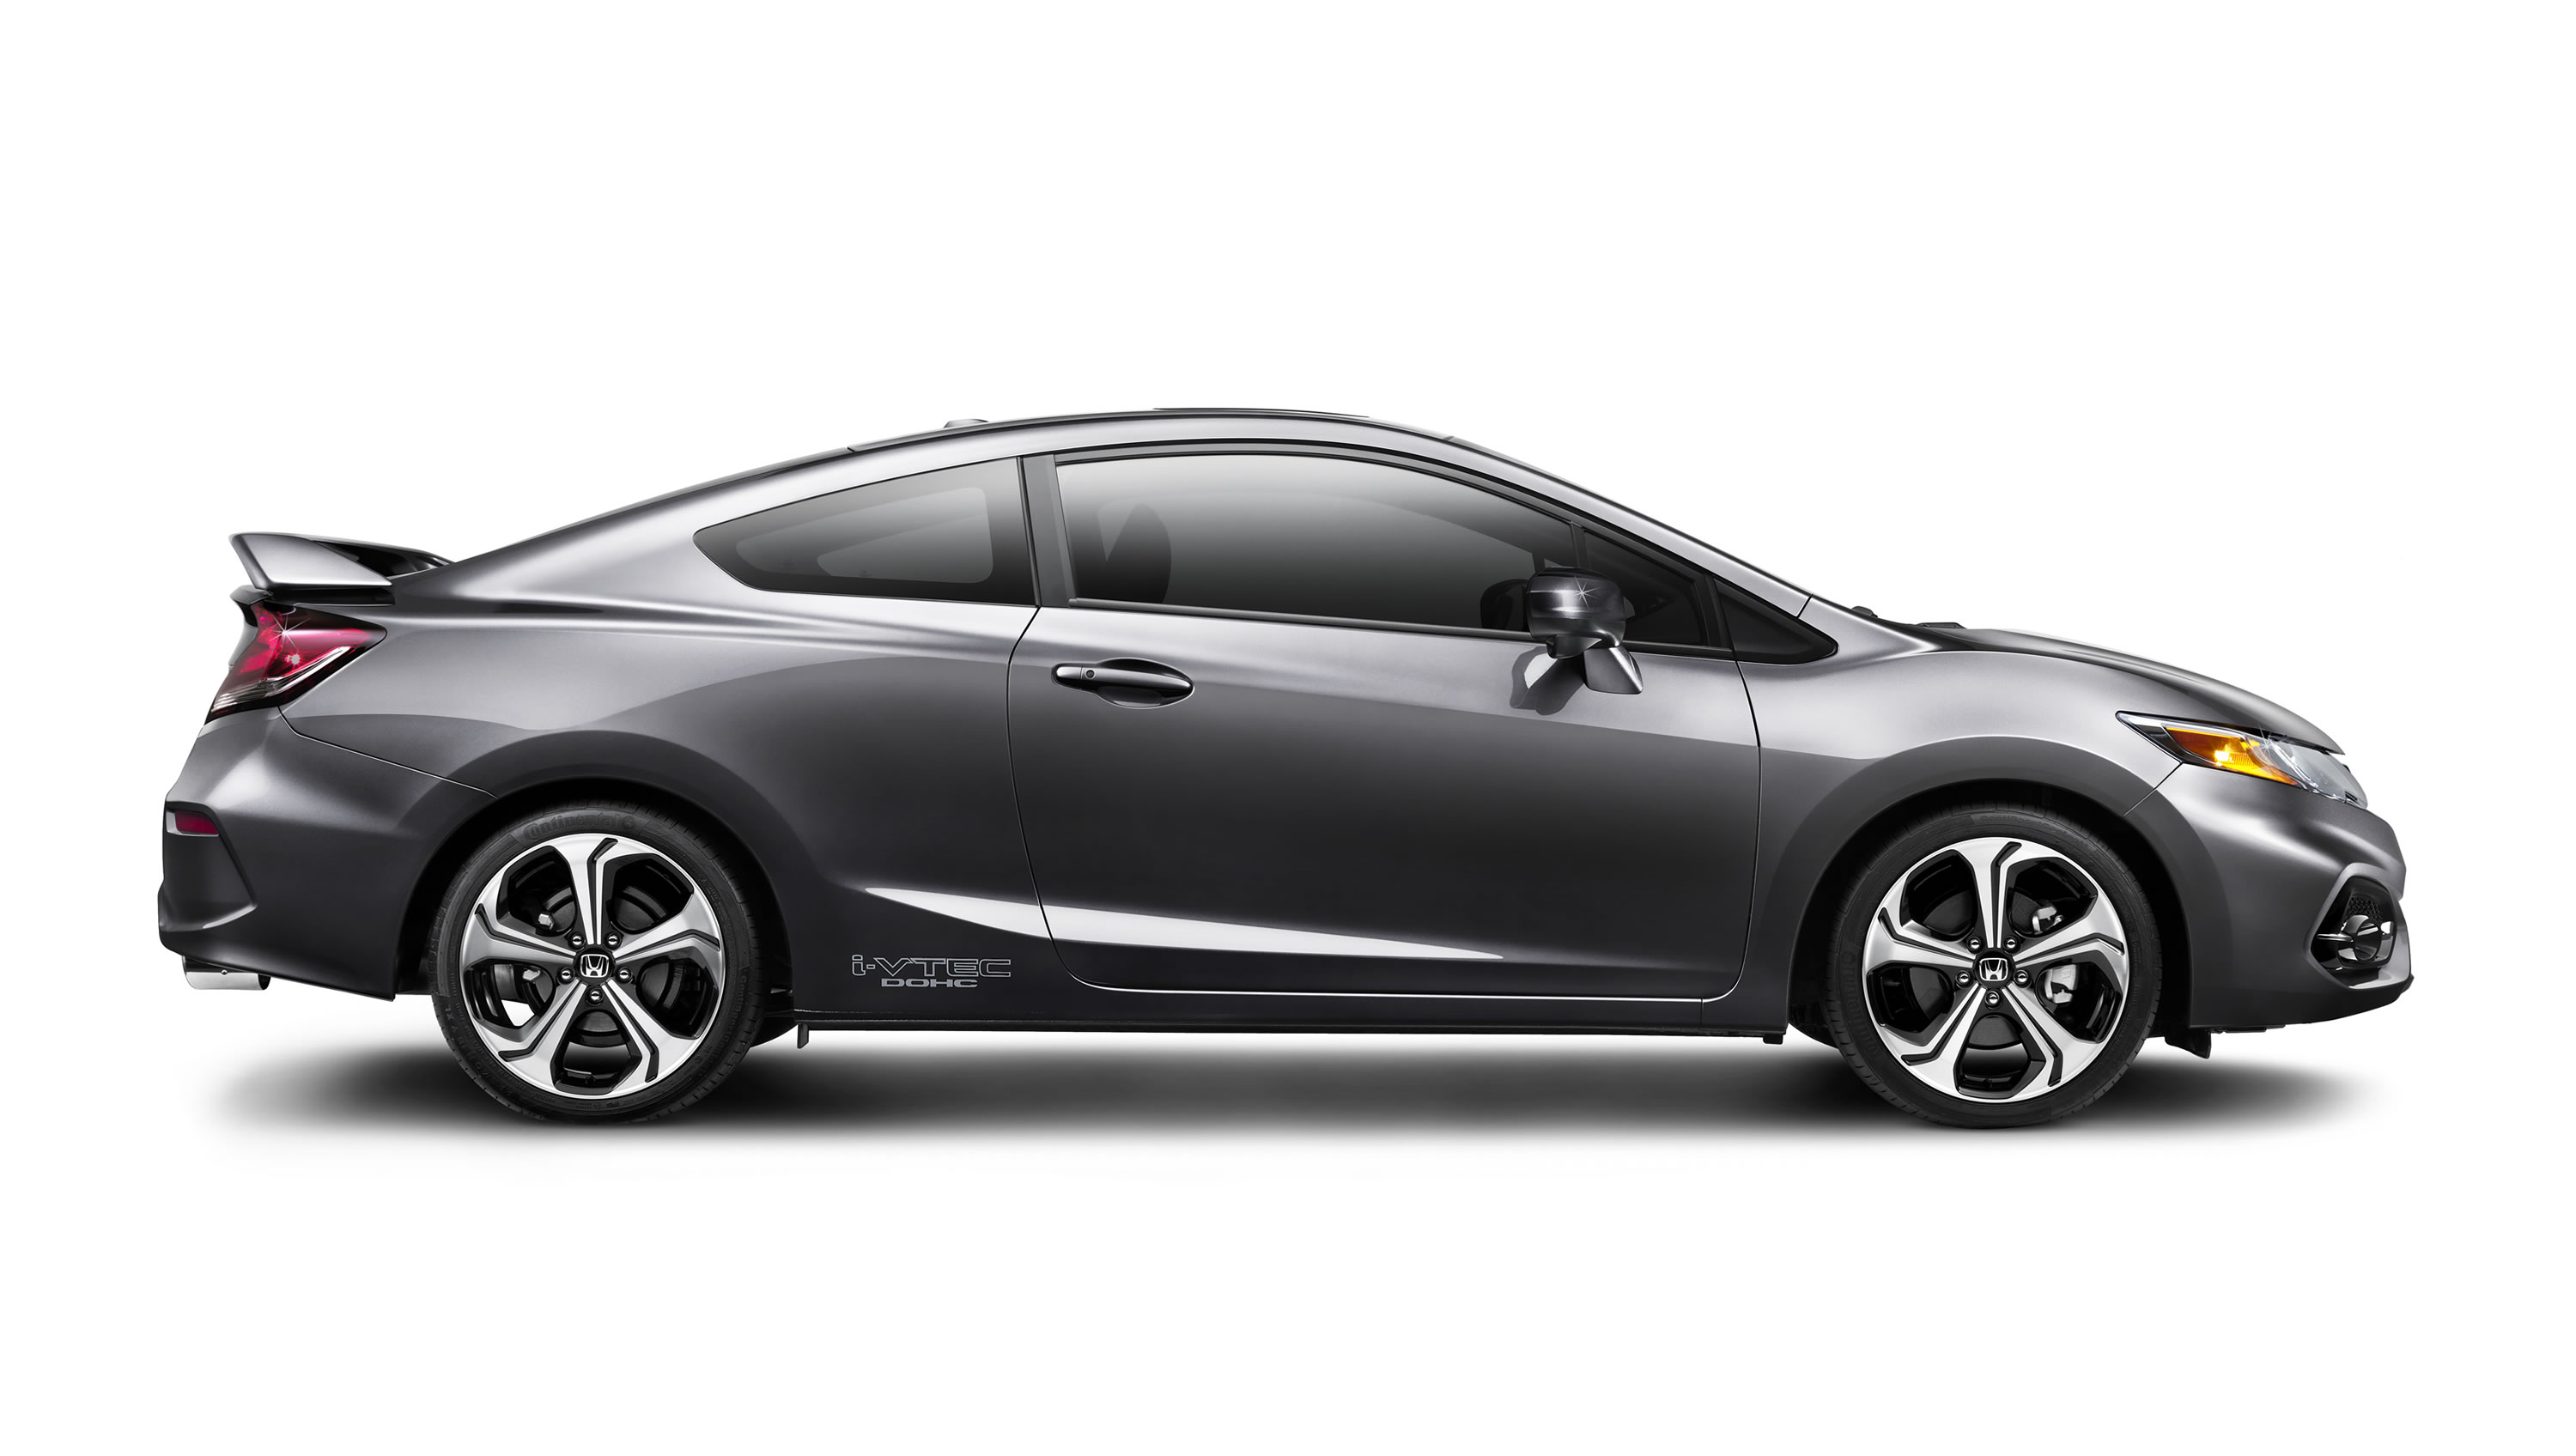 2014 honda civic si coupe photos specs and review rs. Black Bedroom Furniture Sets. Home Design Ideas